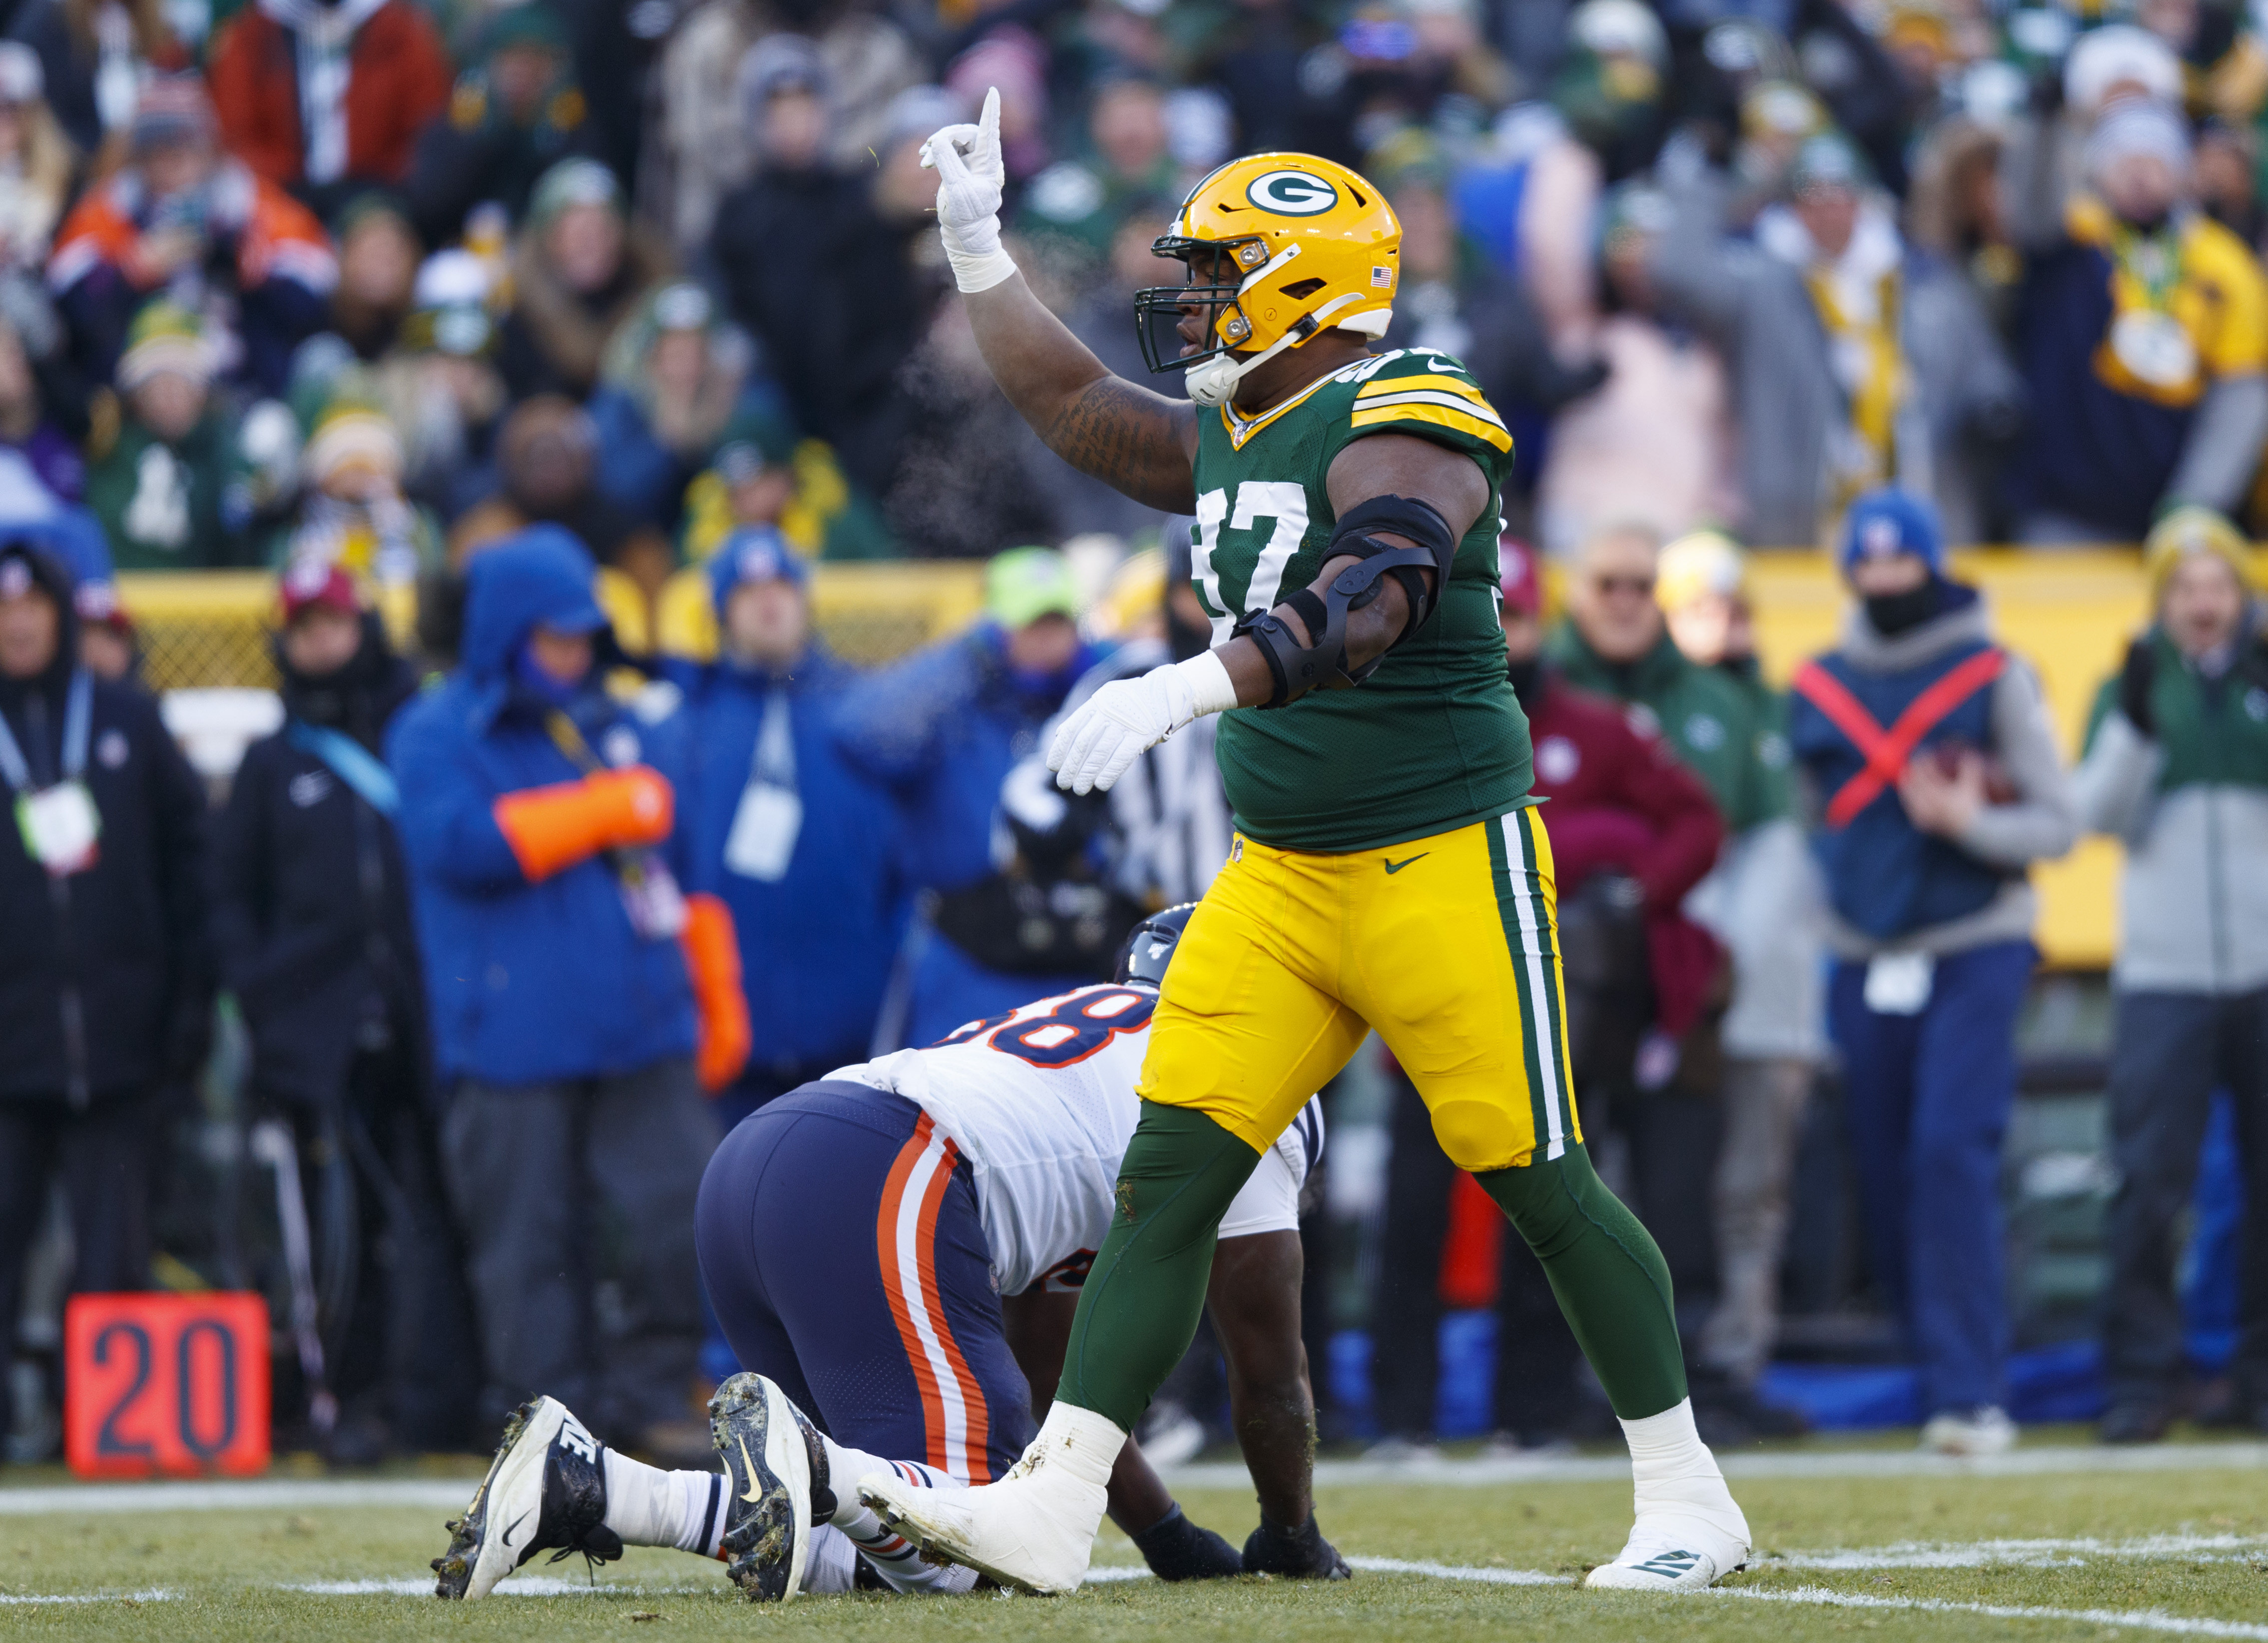 Analyzing the Players That Will Have to Play Their Best for the Packers to Make a Playoff Run